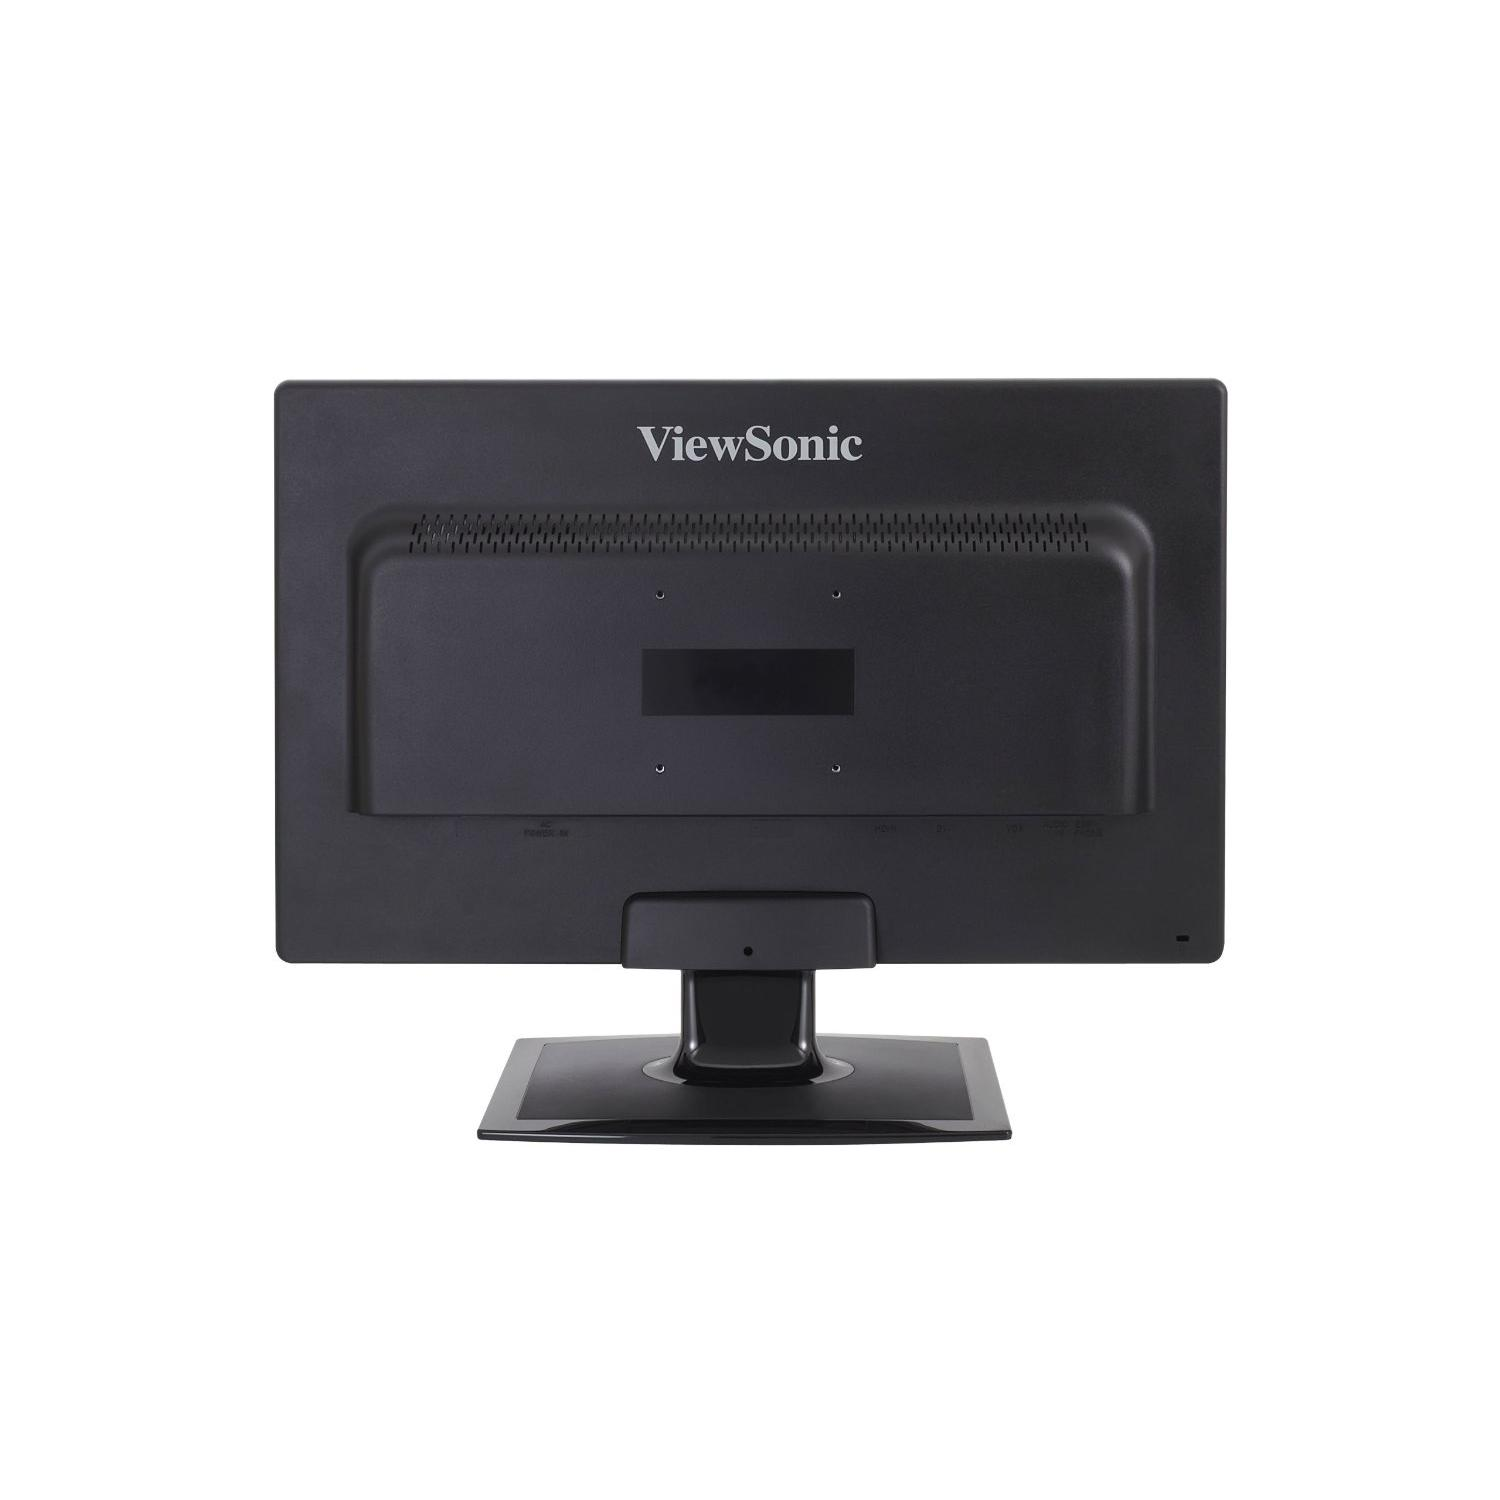 Viewsonic - Ecran VX2410MH-LED